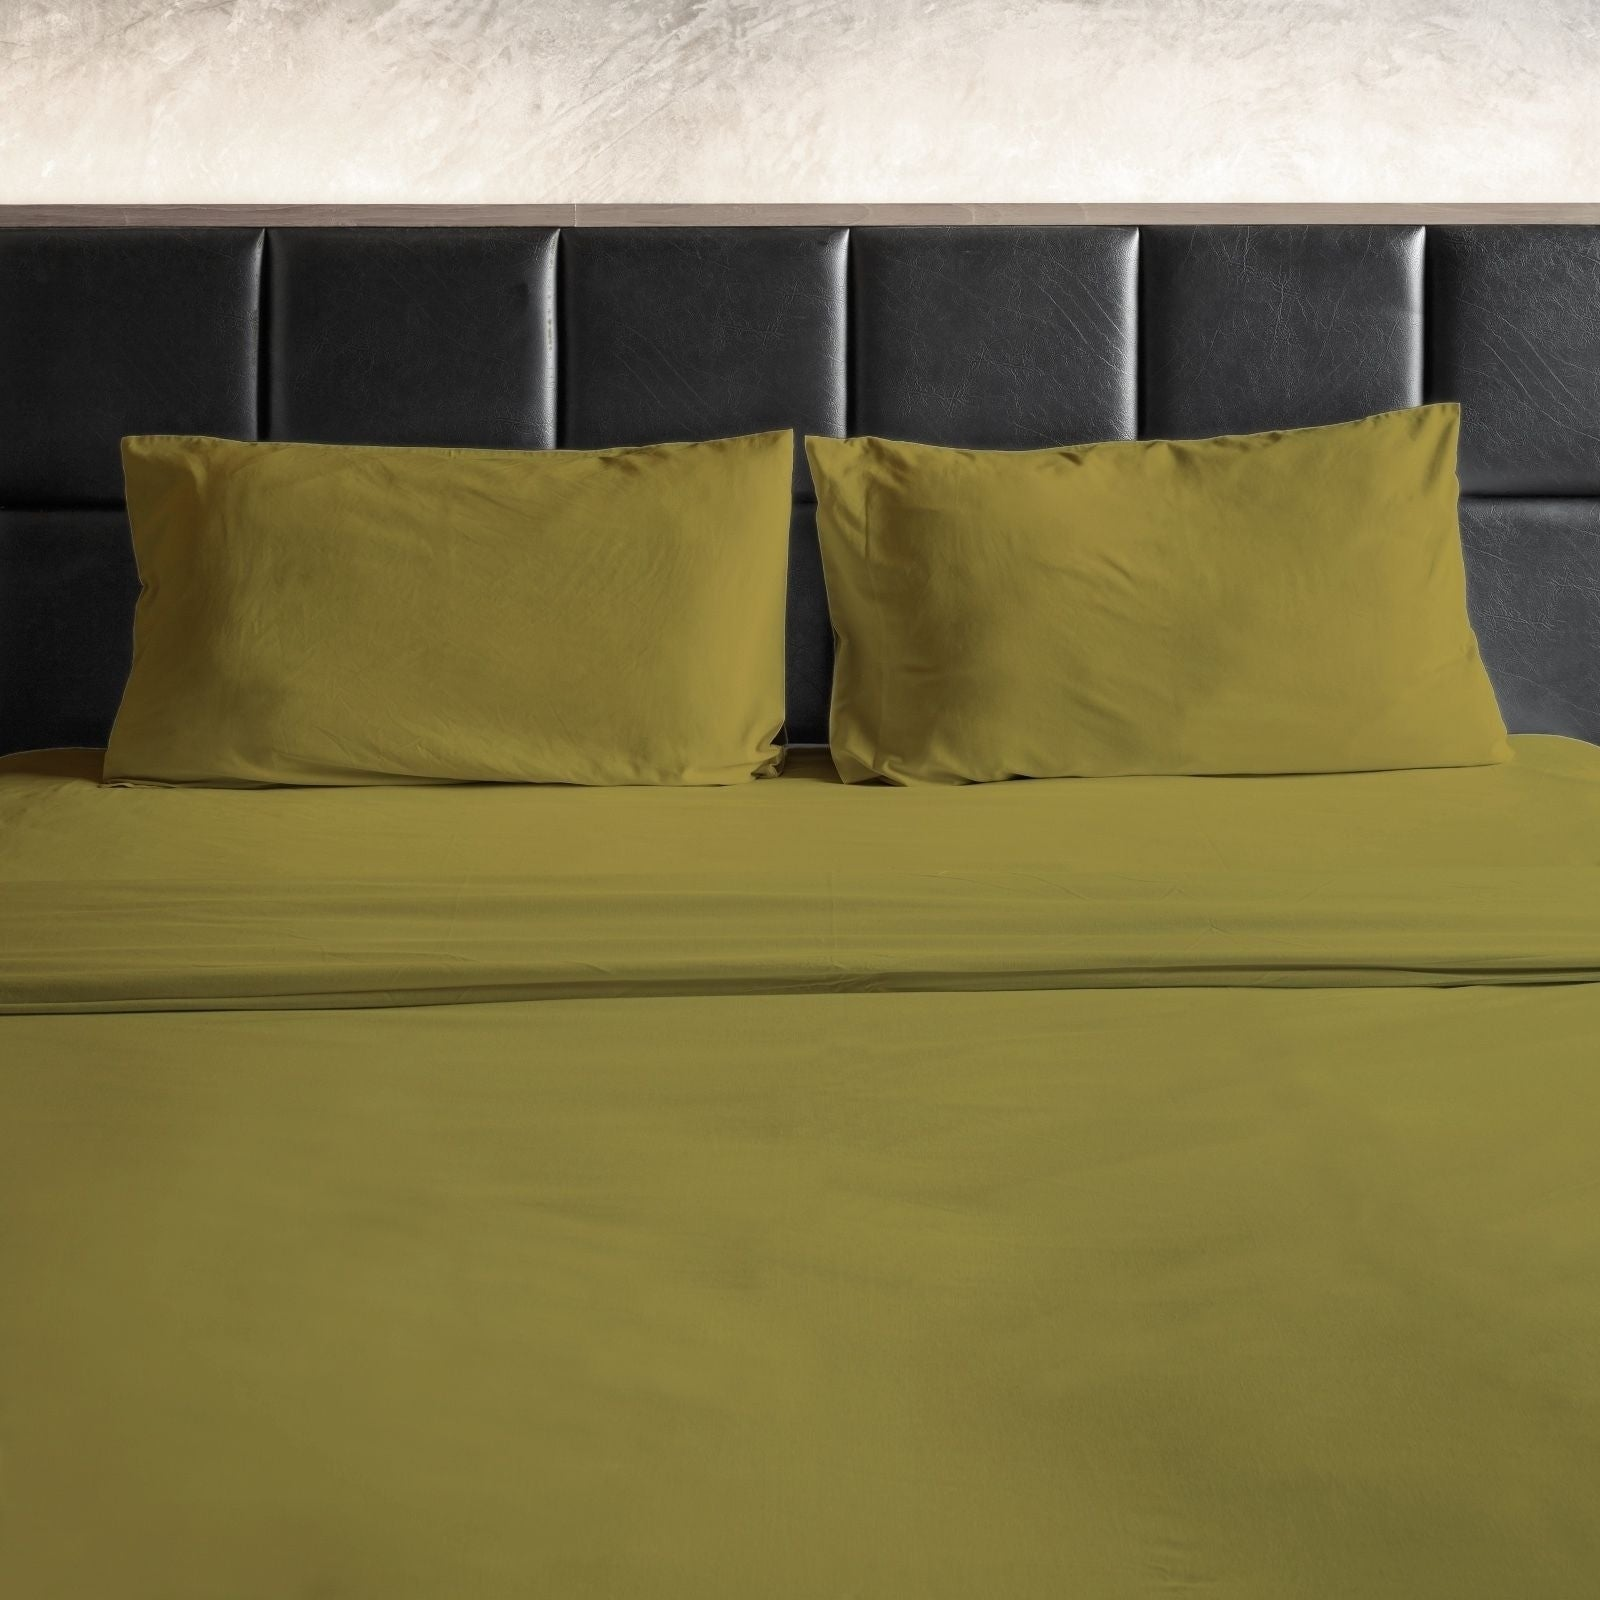 King Size 1800 Count Series Bed Sheets Deep Pocket 4 Piece Set   12 Colors    Free Shipping On Orders Over $45   Overstock   25243369